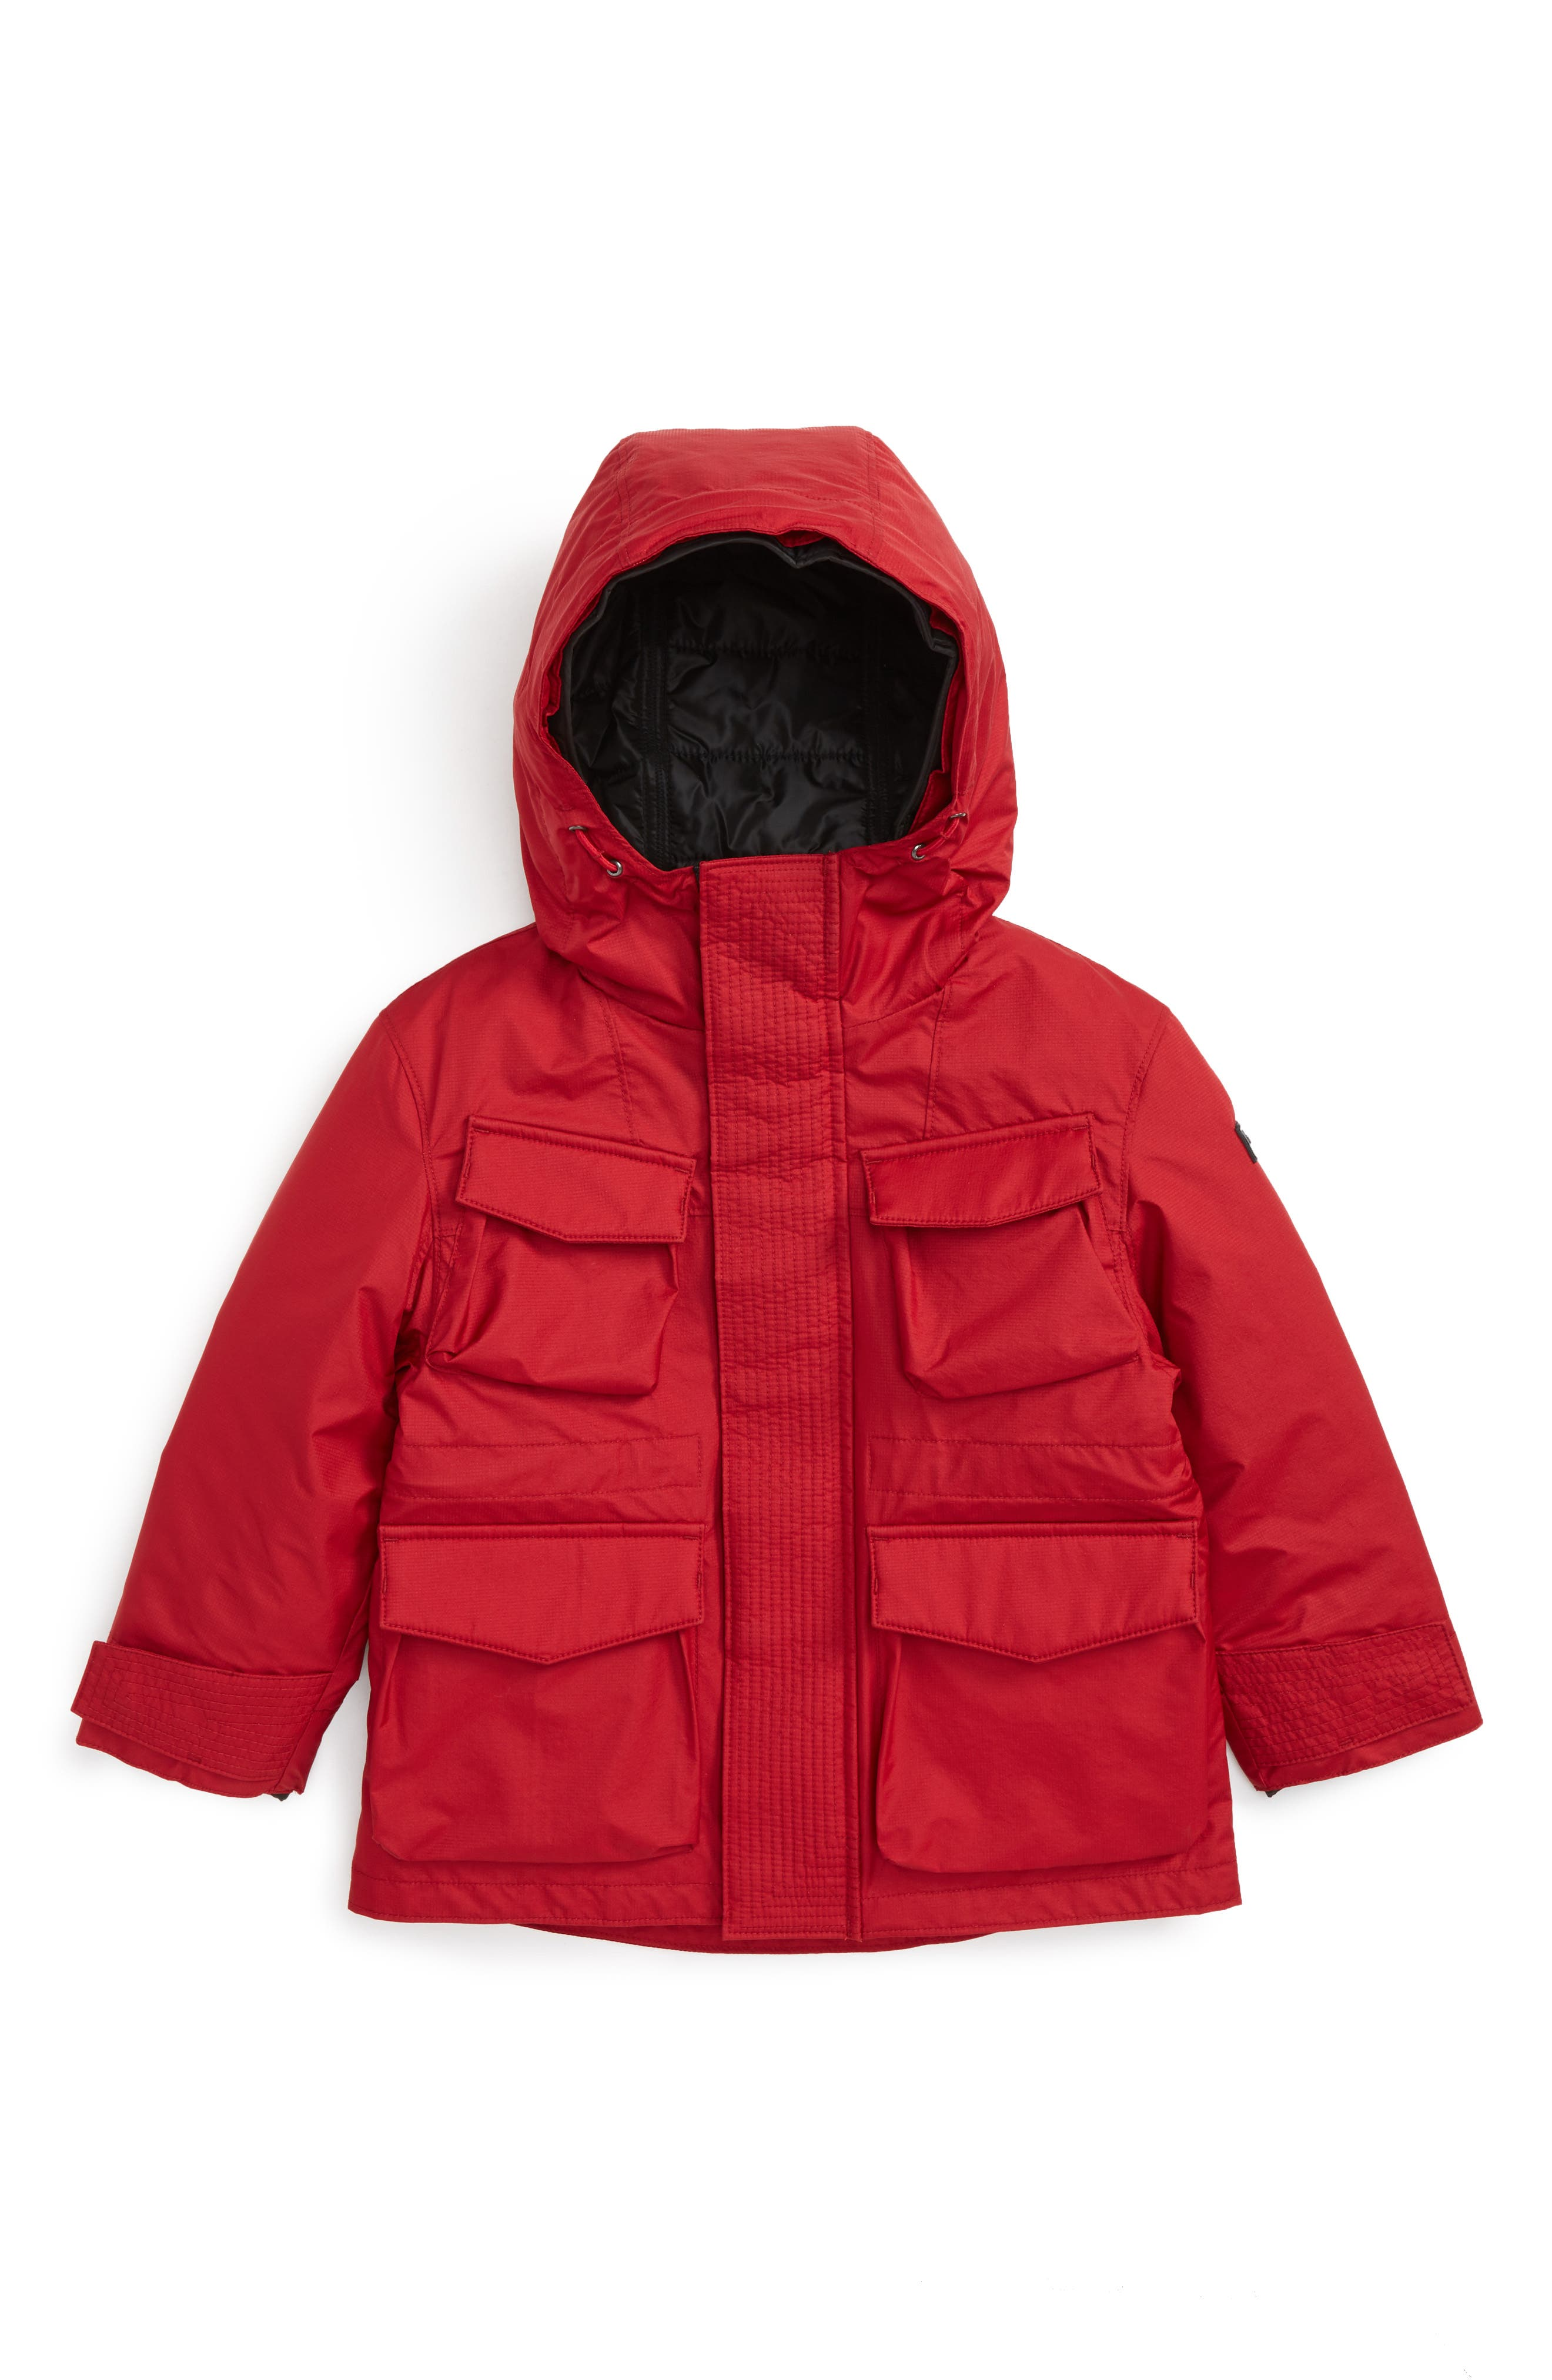 Terrick 3-in-1 Jacket,                         Main,                         color, Parade Red